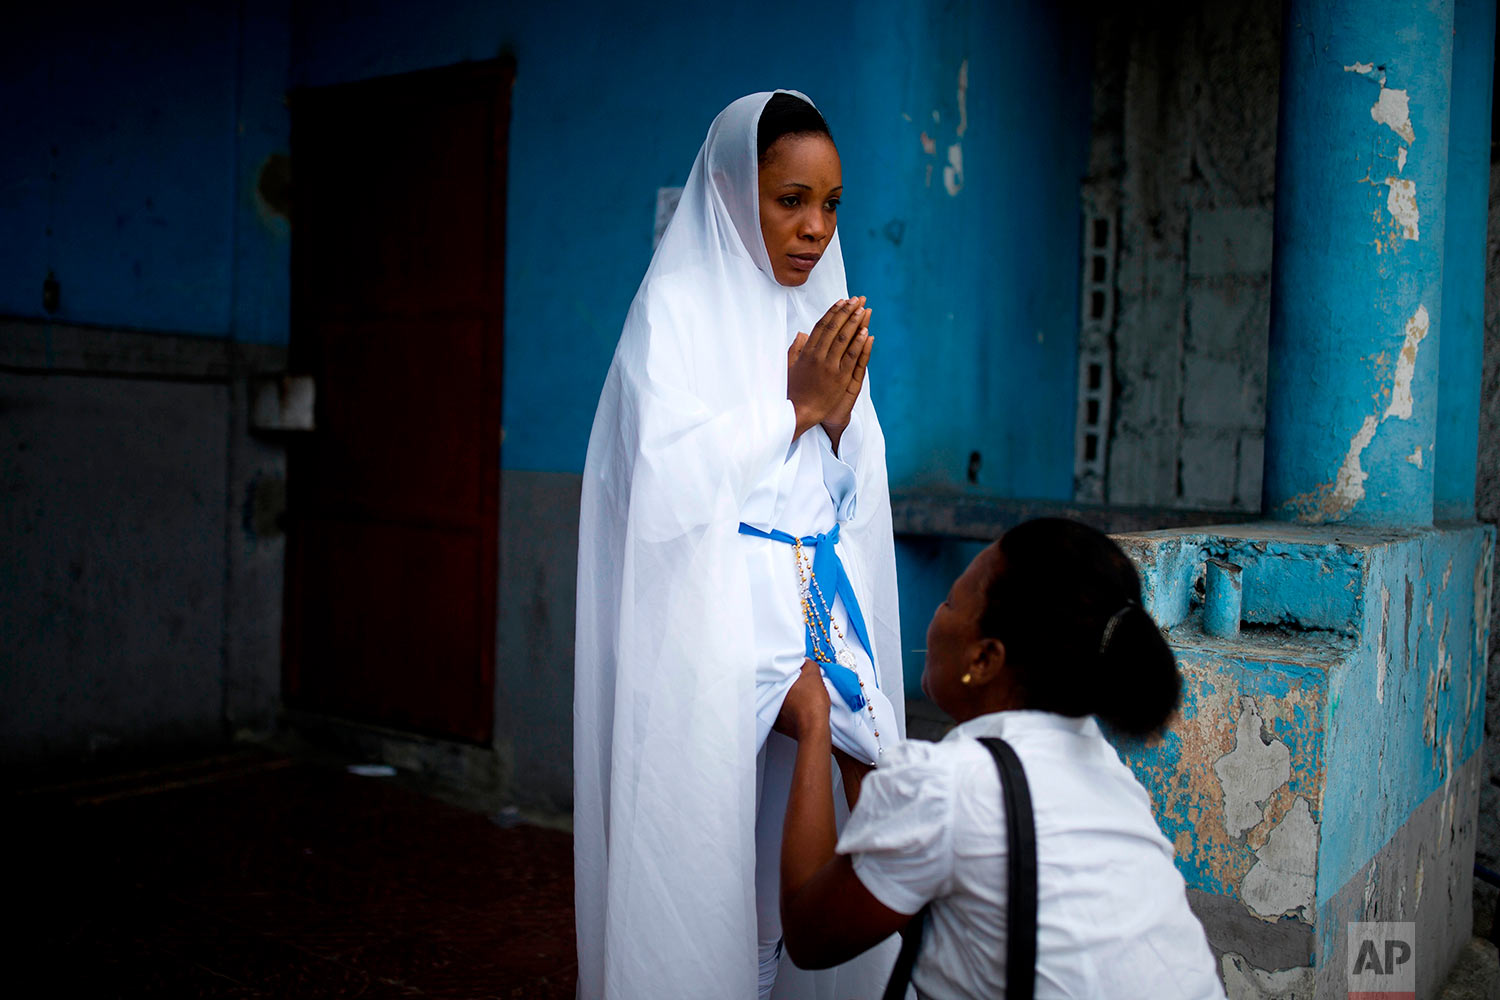 A woman dressed as the Virgin May holds her hands in prayer as a seamstress puts on the finishing touches to her costume in preparation for the Way of the Cross reenactment to mark Good Friday, in Port-au-Prince, Haiti, March 30, 2018. Thousands of Haitians are commemorating the crucifixion of Jesus Christ by reenacting the Way of the Cross, visiting the 14 stations, each marking an event that befell Jesus Christ on his final journey. (AP Photo/Dieu Nalio Chery)